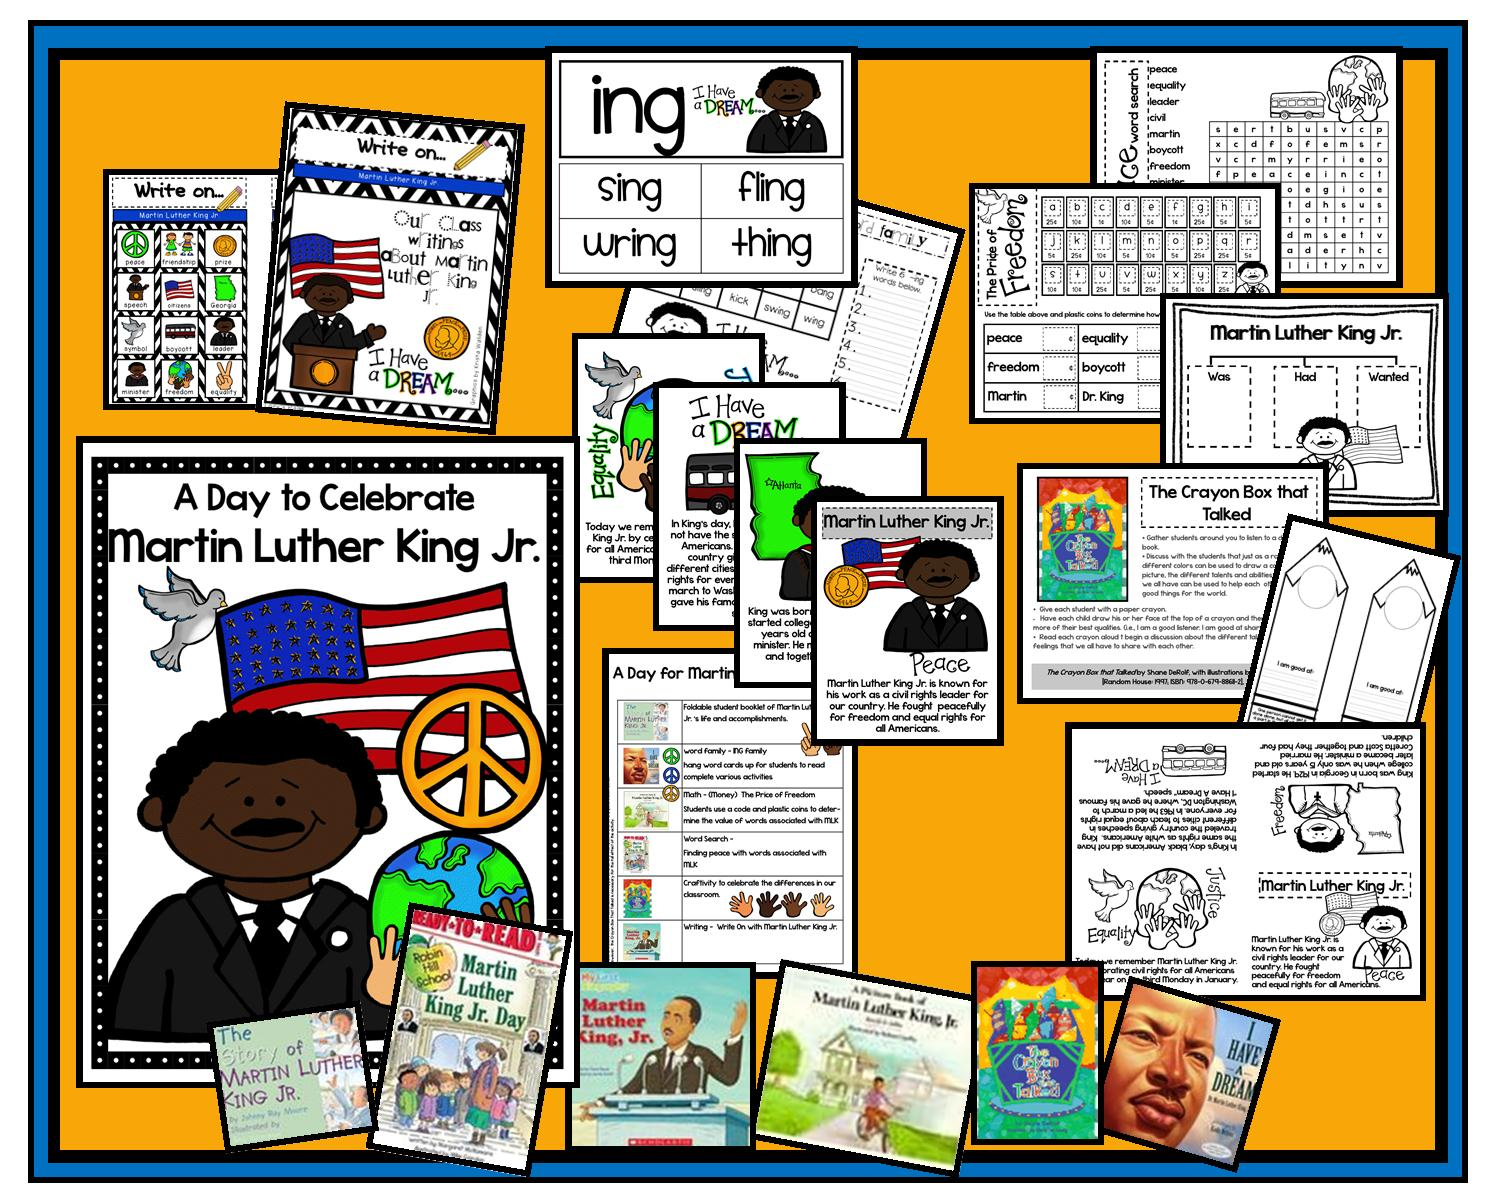 Lory S 2nd Grade Skills A Day Full Of Martin Luther King Jr